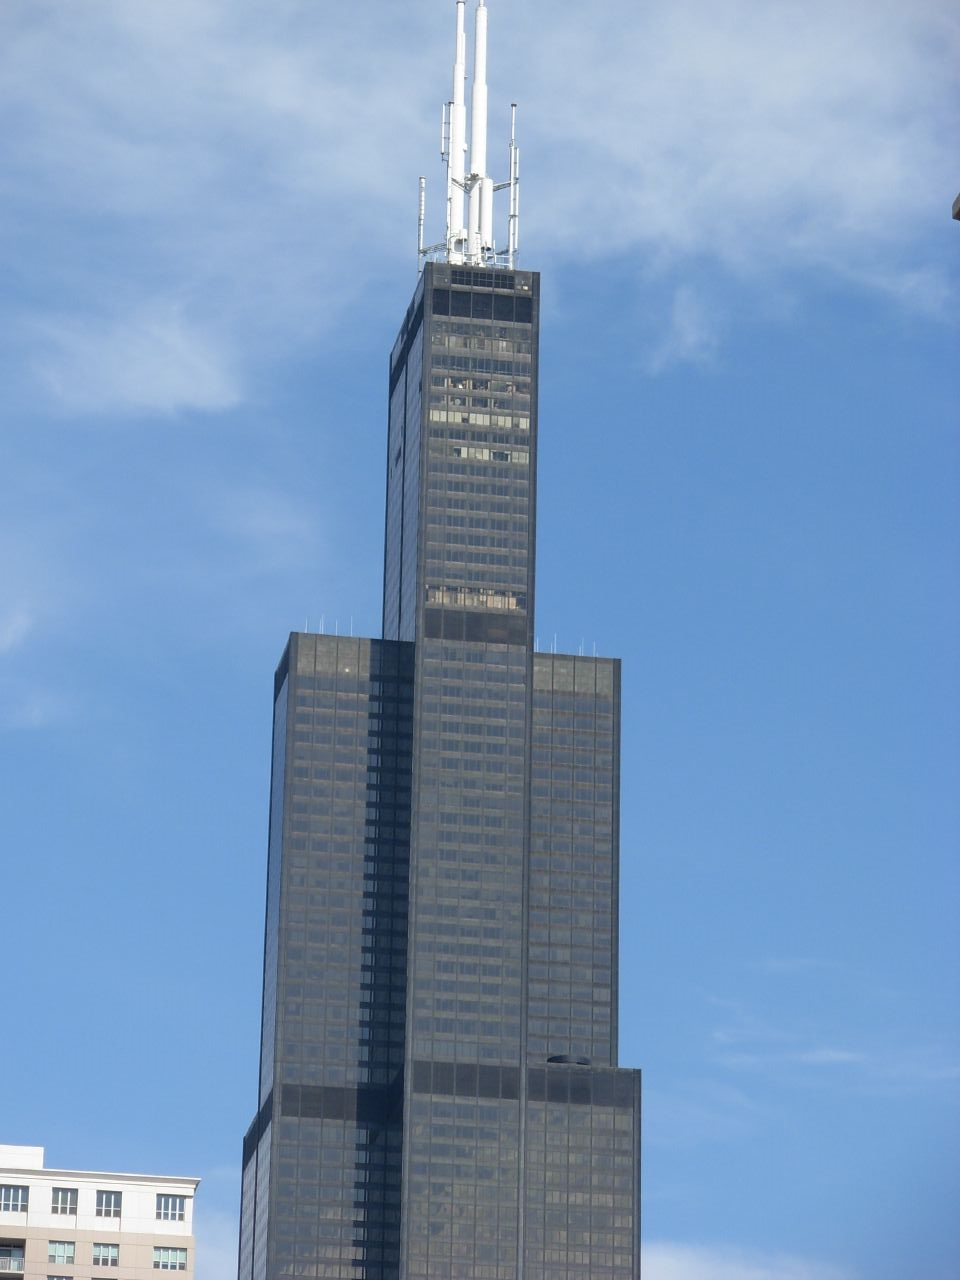 The Sears Tower, where I worked for four years, will never be the Willis Tower to me.